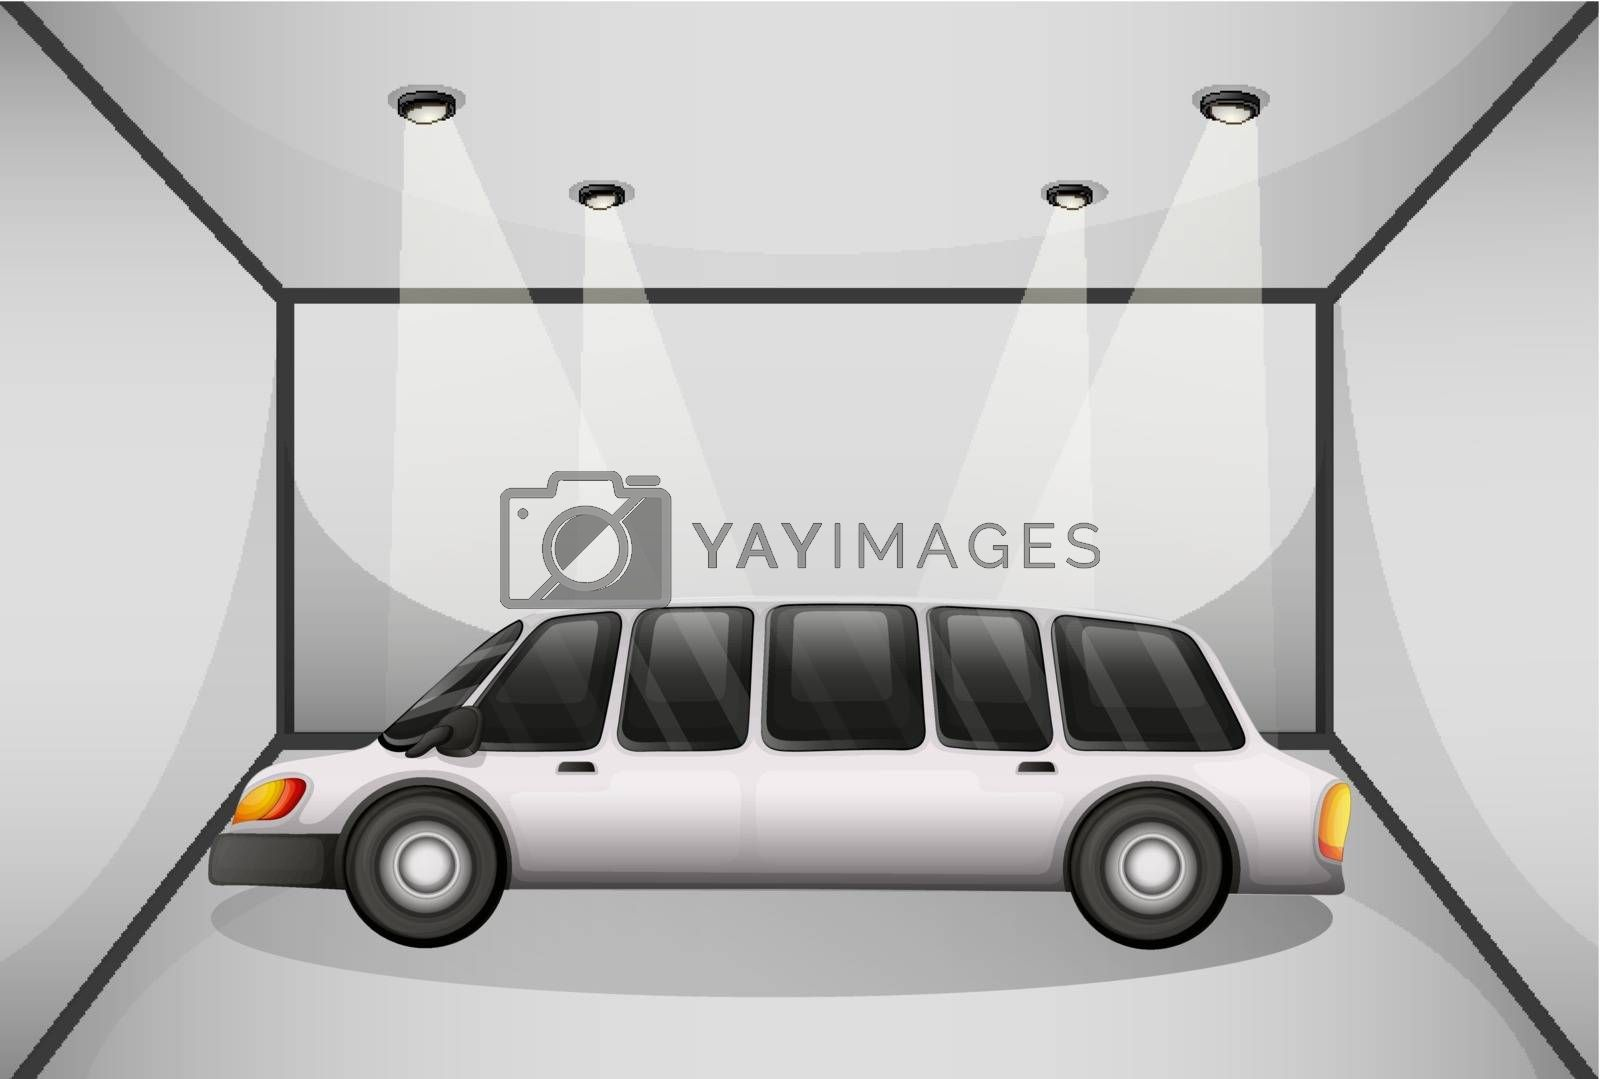 Illustration of a limousine at the garage